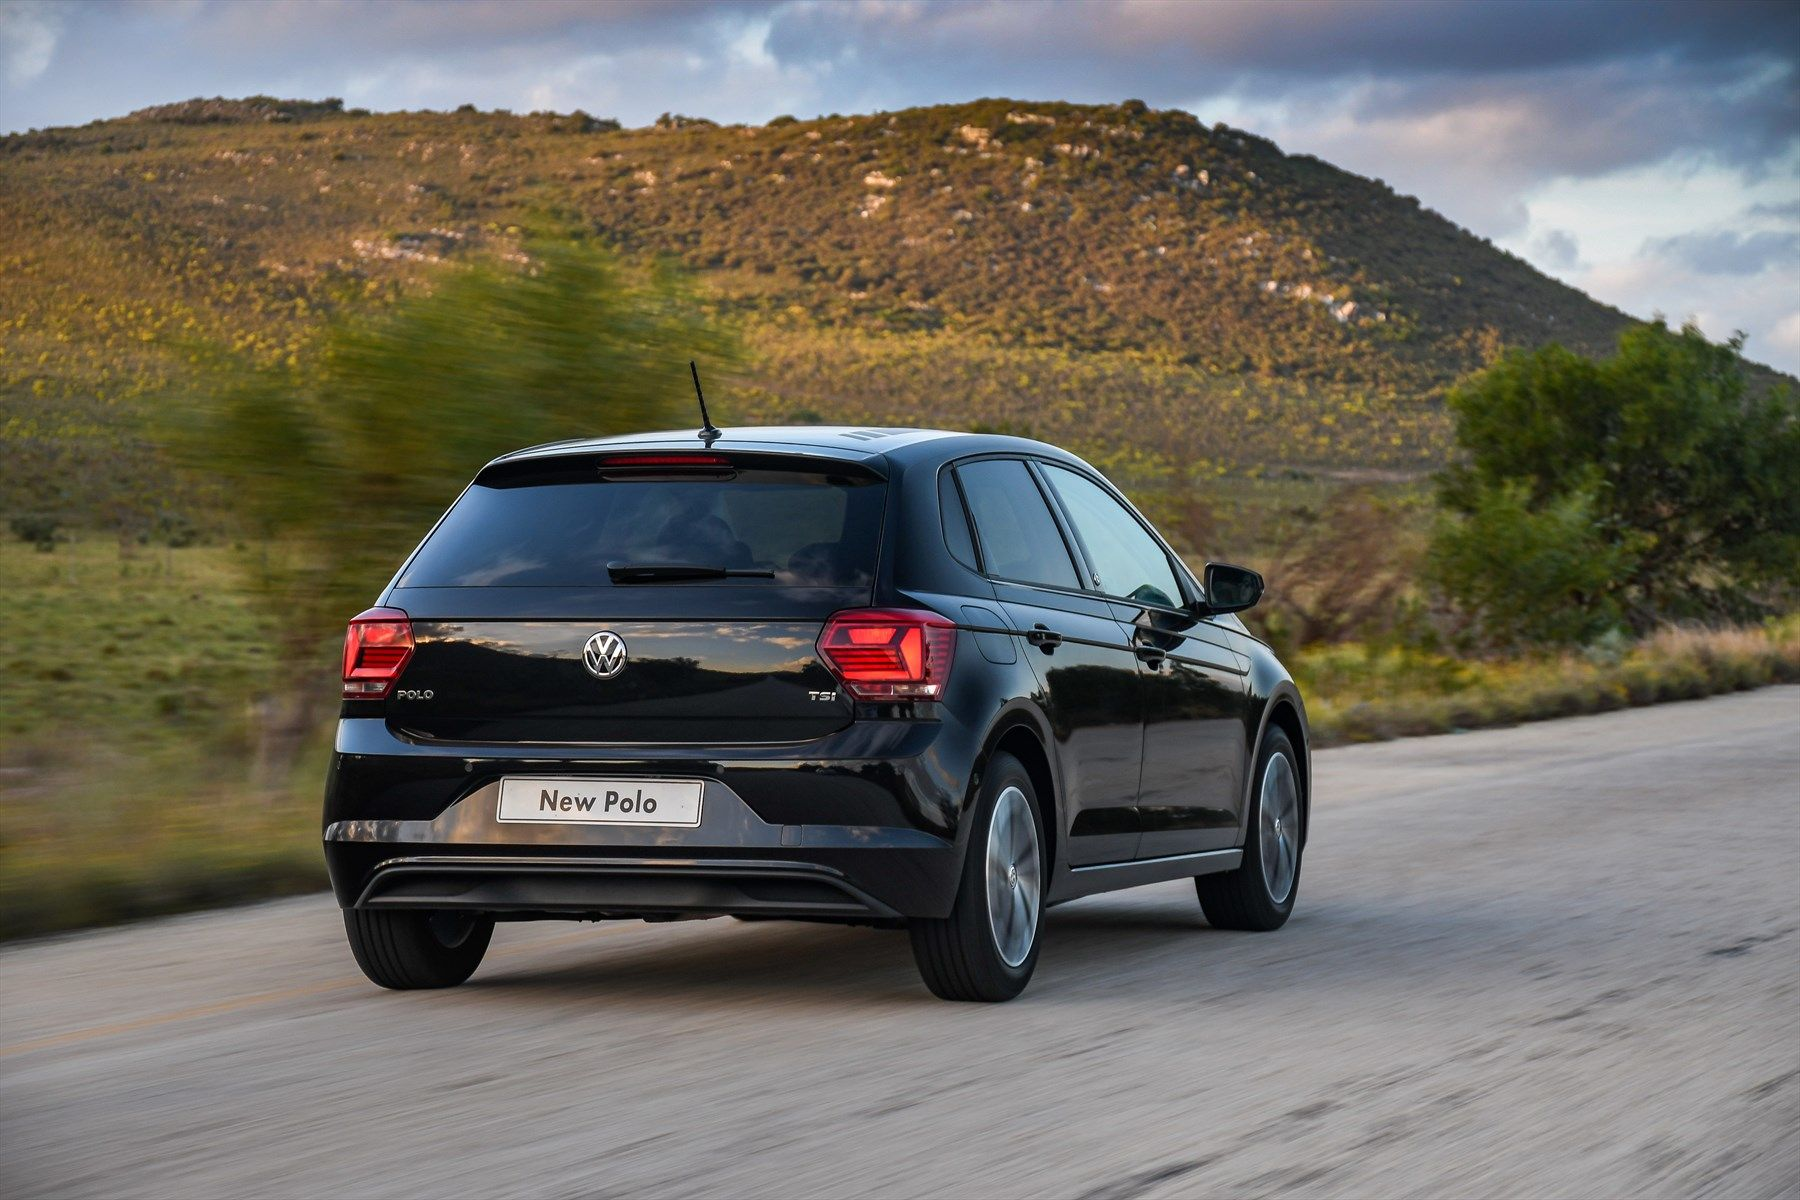 volkswagen-polo_-driving-008_1800x1800